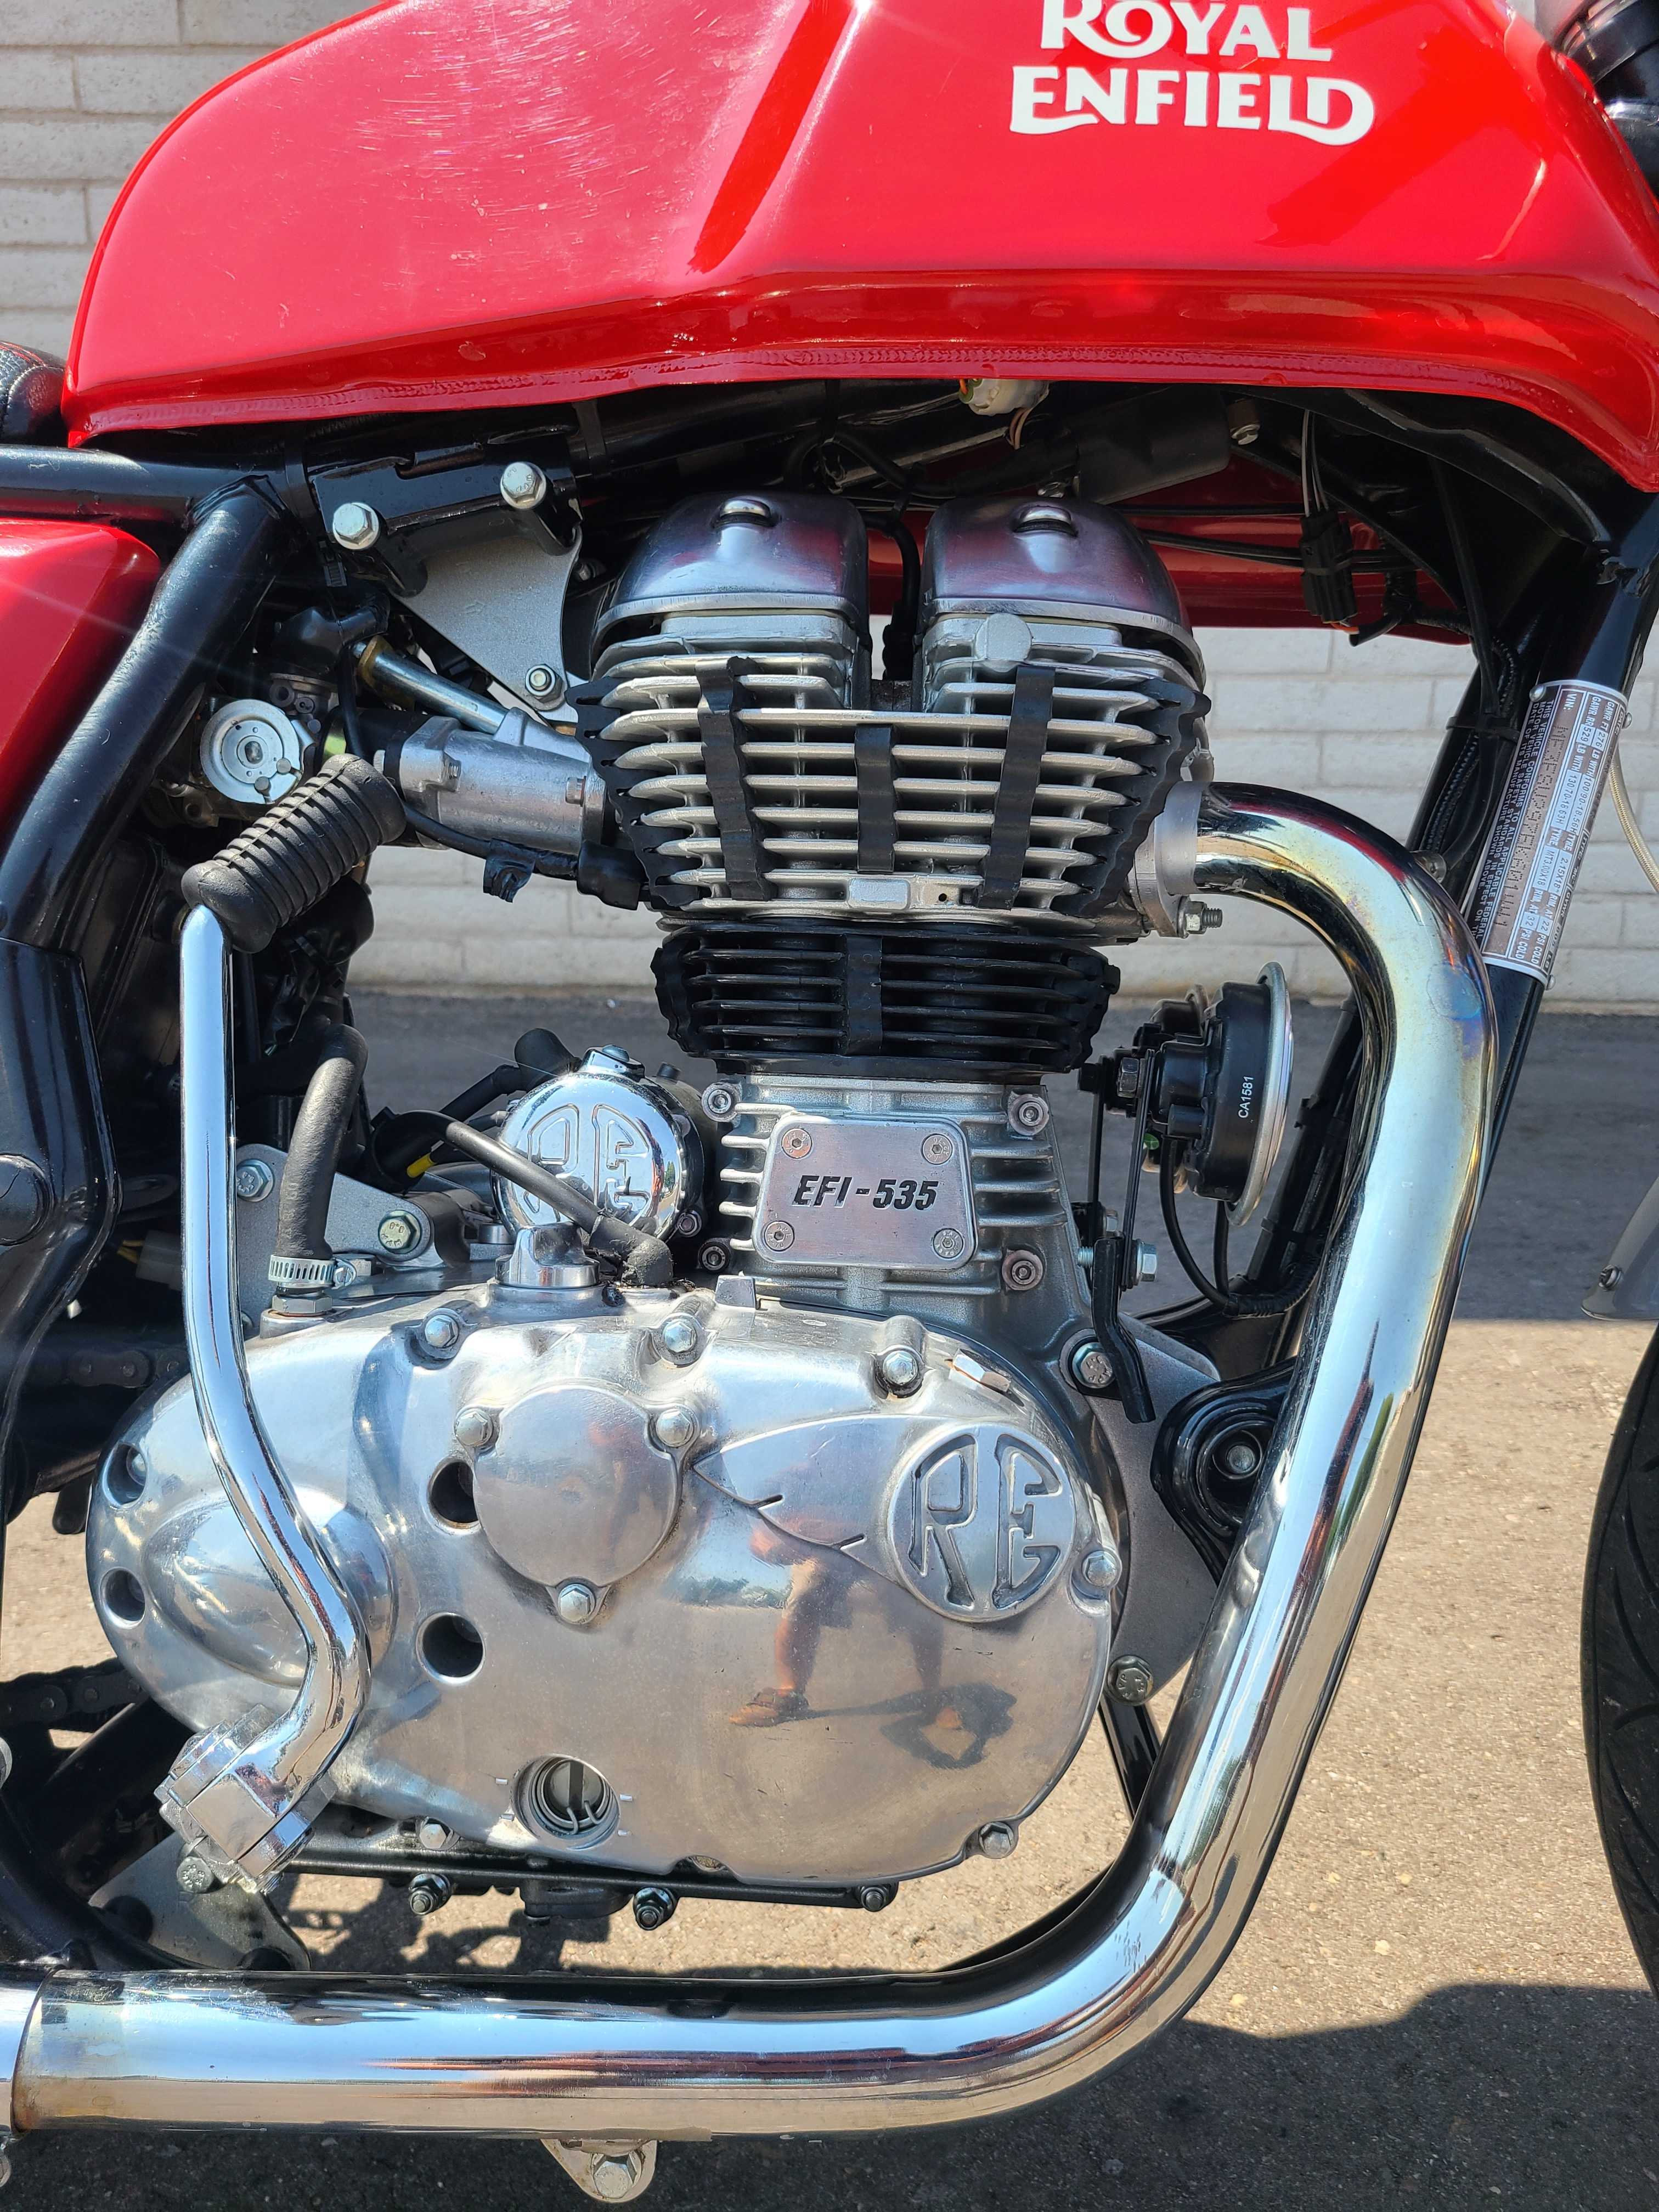 2014 Royal Enfield Continental GT Cafe Racer at Bobby J's Yamaha, Albuquerque, NM 87110